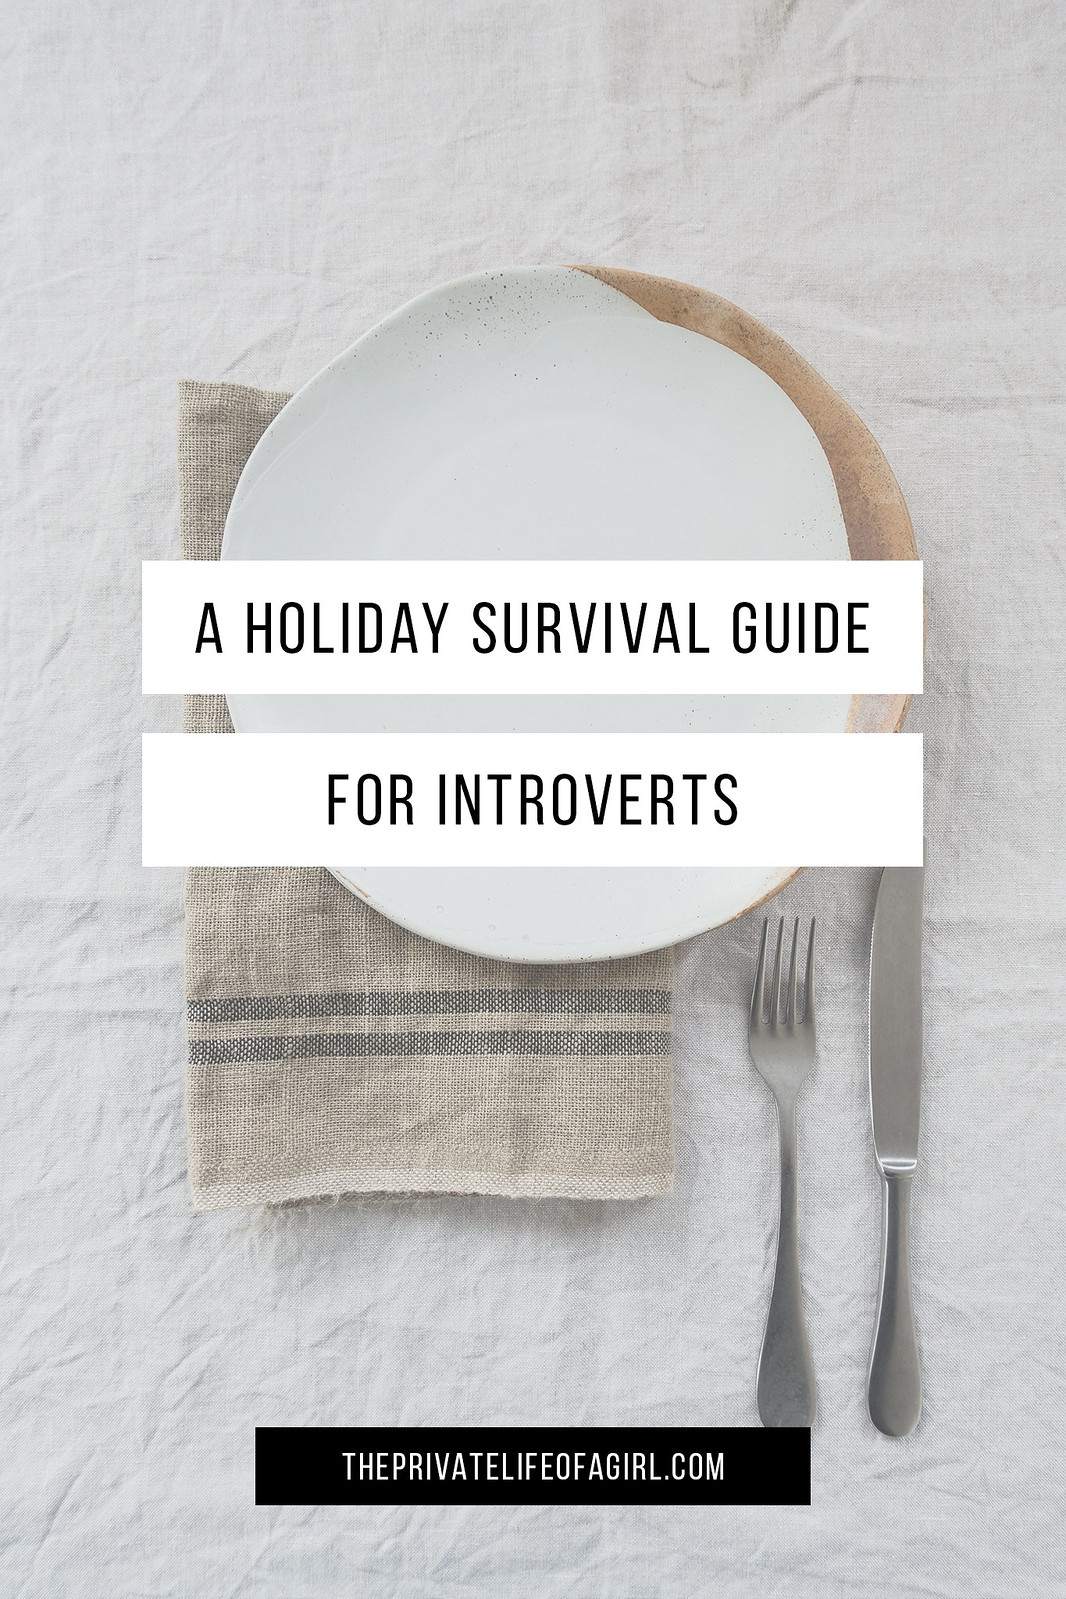 A Holiday Survival Guide (For Introverts)